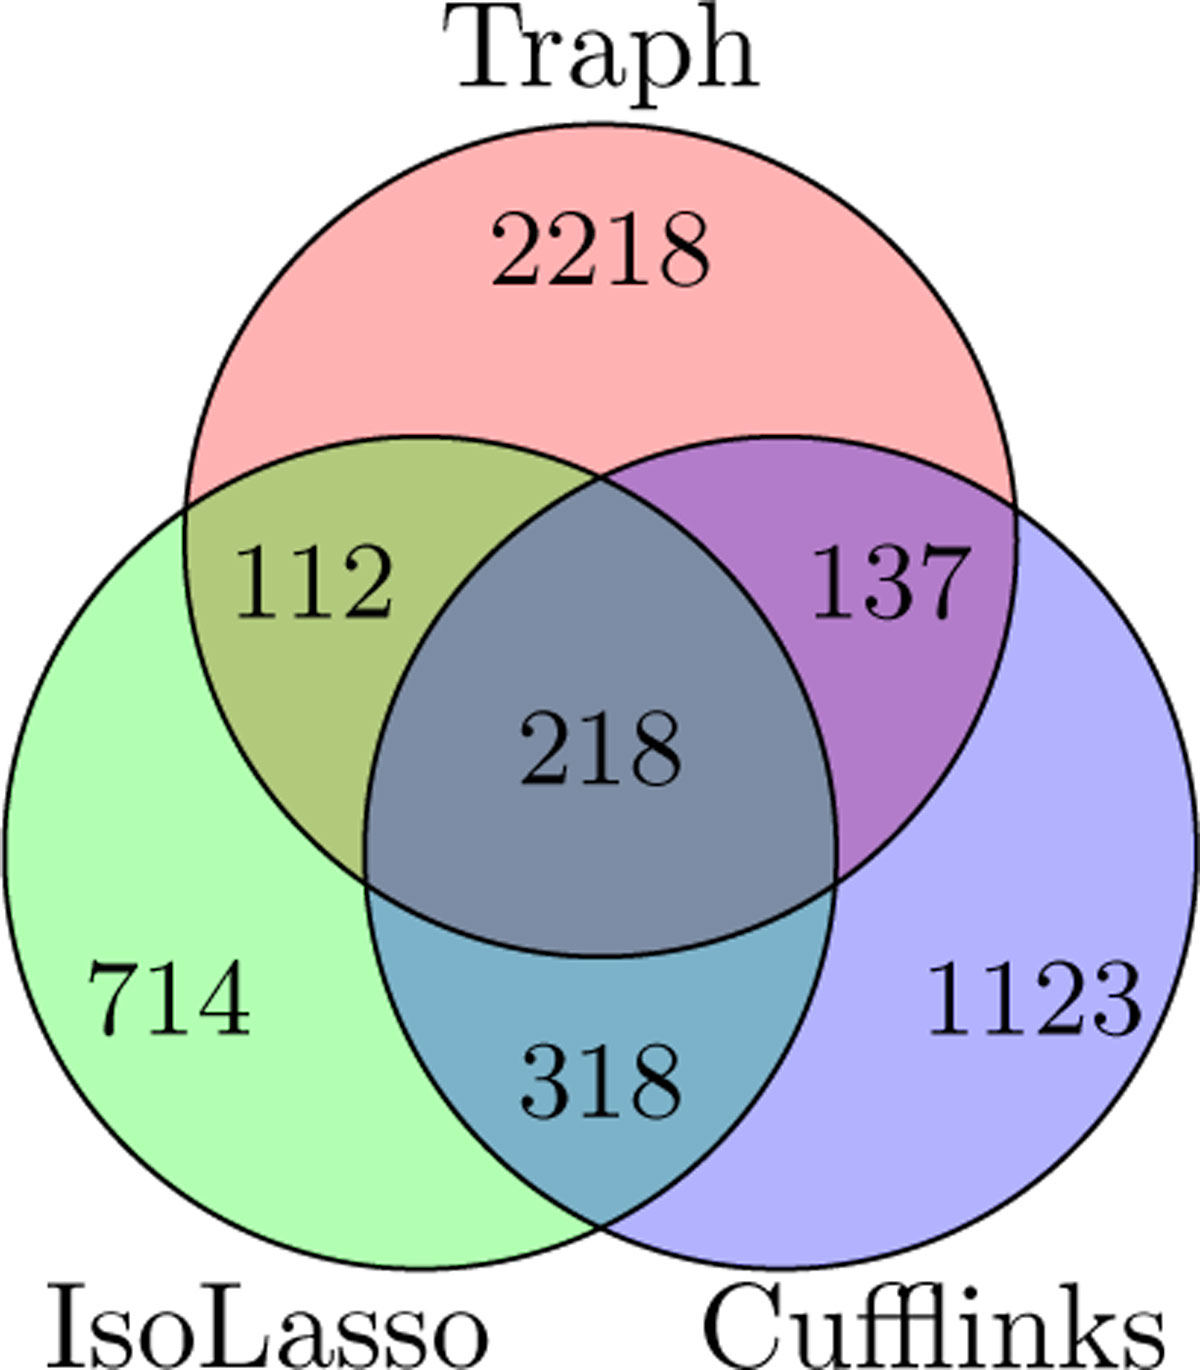 https://static-content.springer.com/image/art%3A10.1186%2F1471-2105-14-S5-S15/MediaObjects/12859_2013_Article_5783_Fig4_HTML.jpg